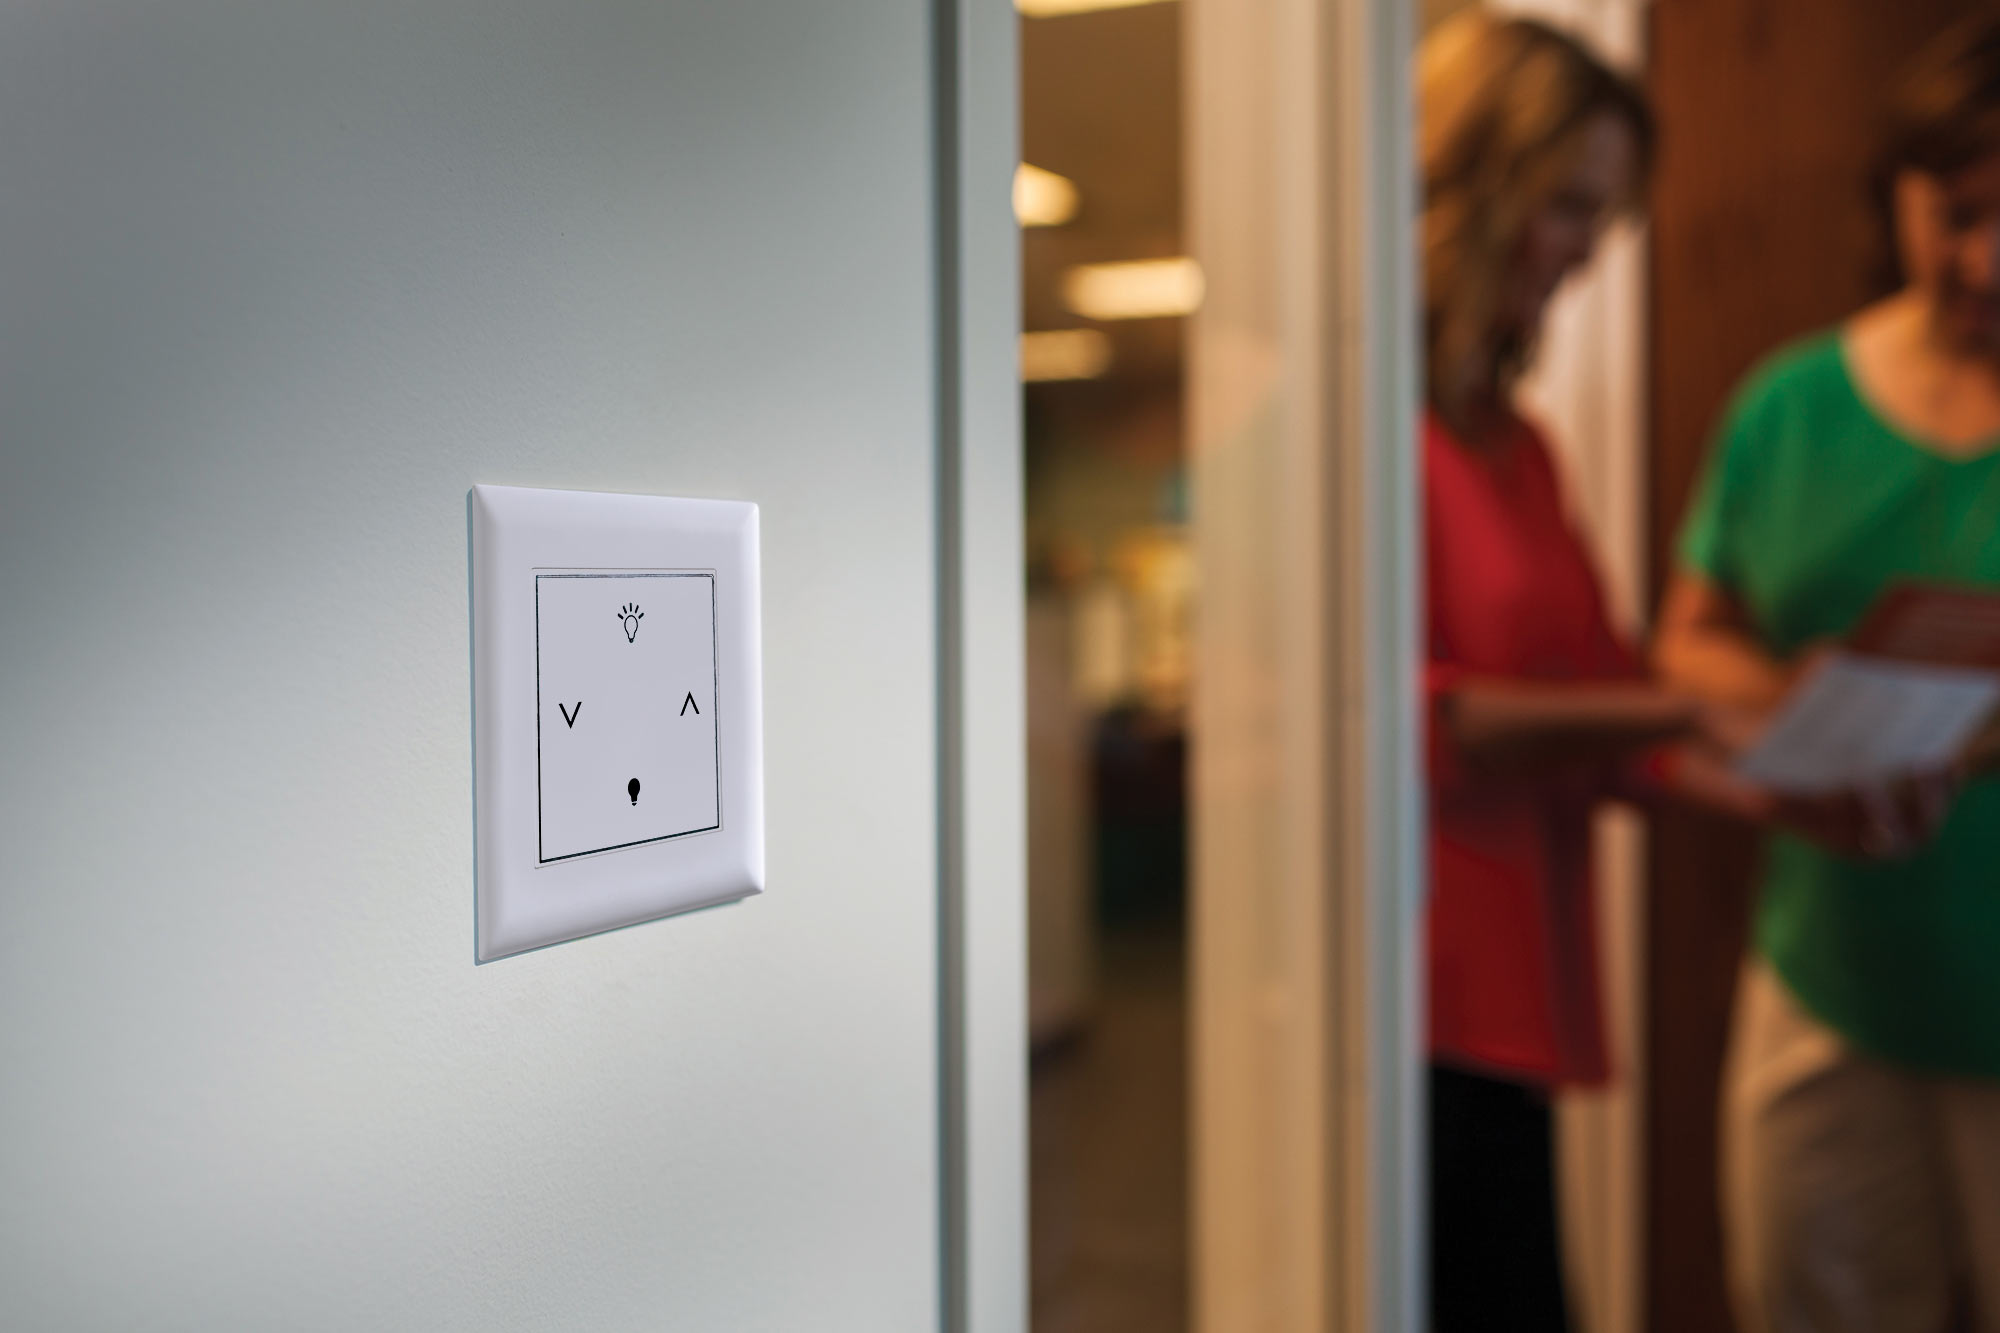 AUDACY WALL-MOUNT AND REMOTE SWITCHES